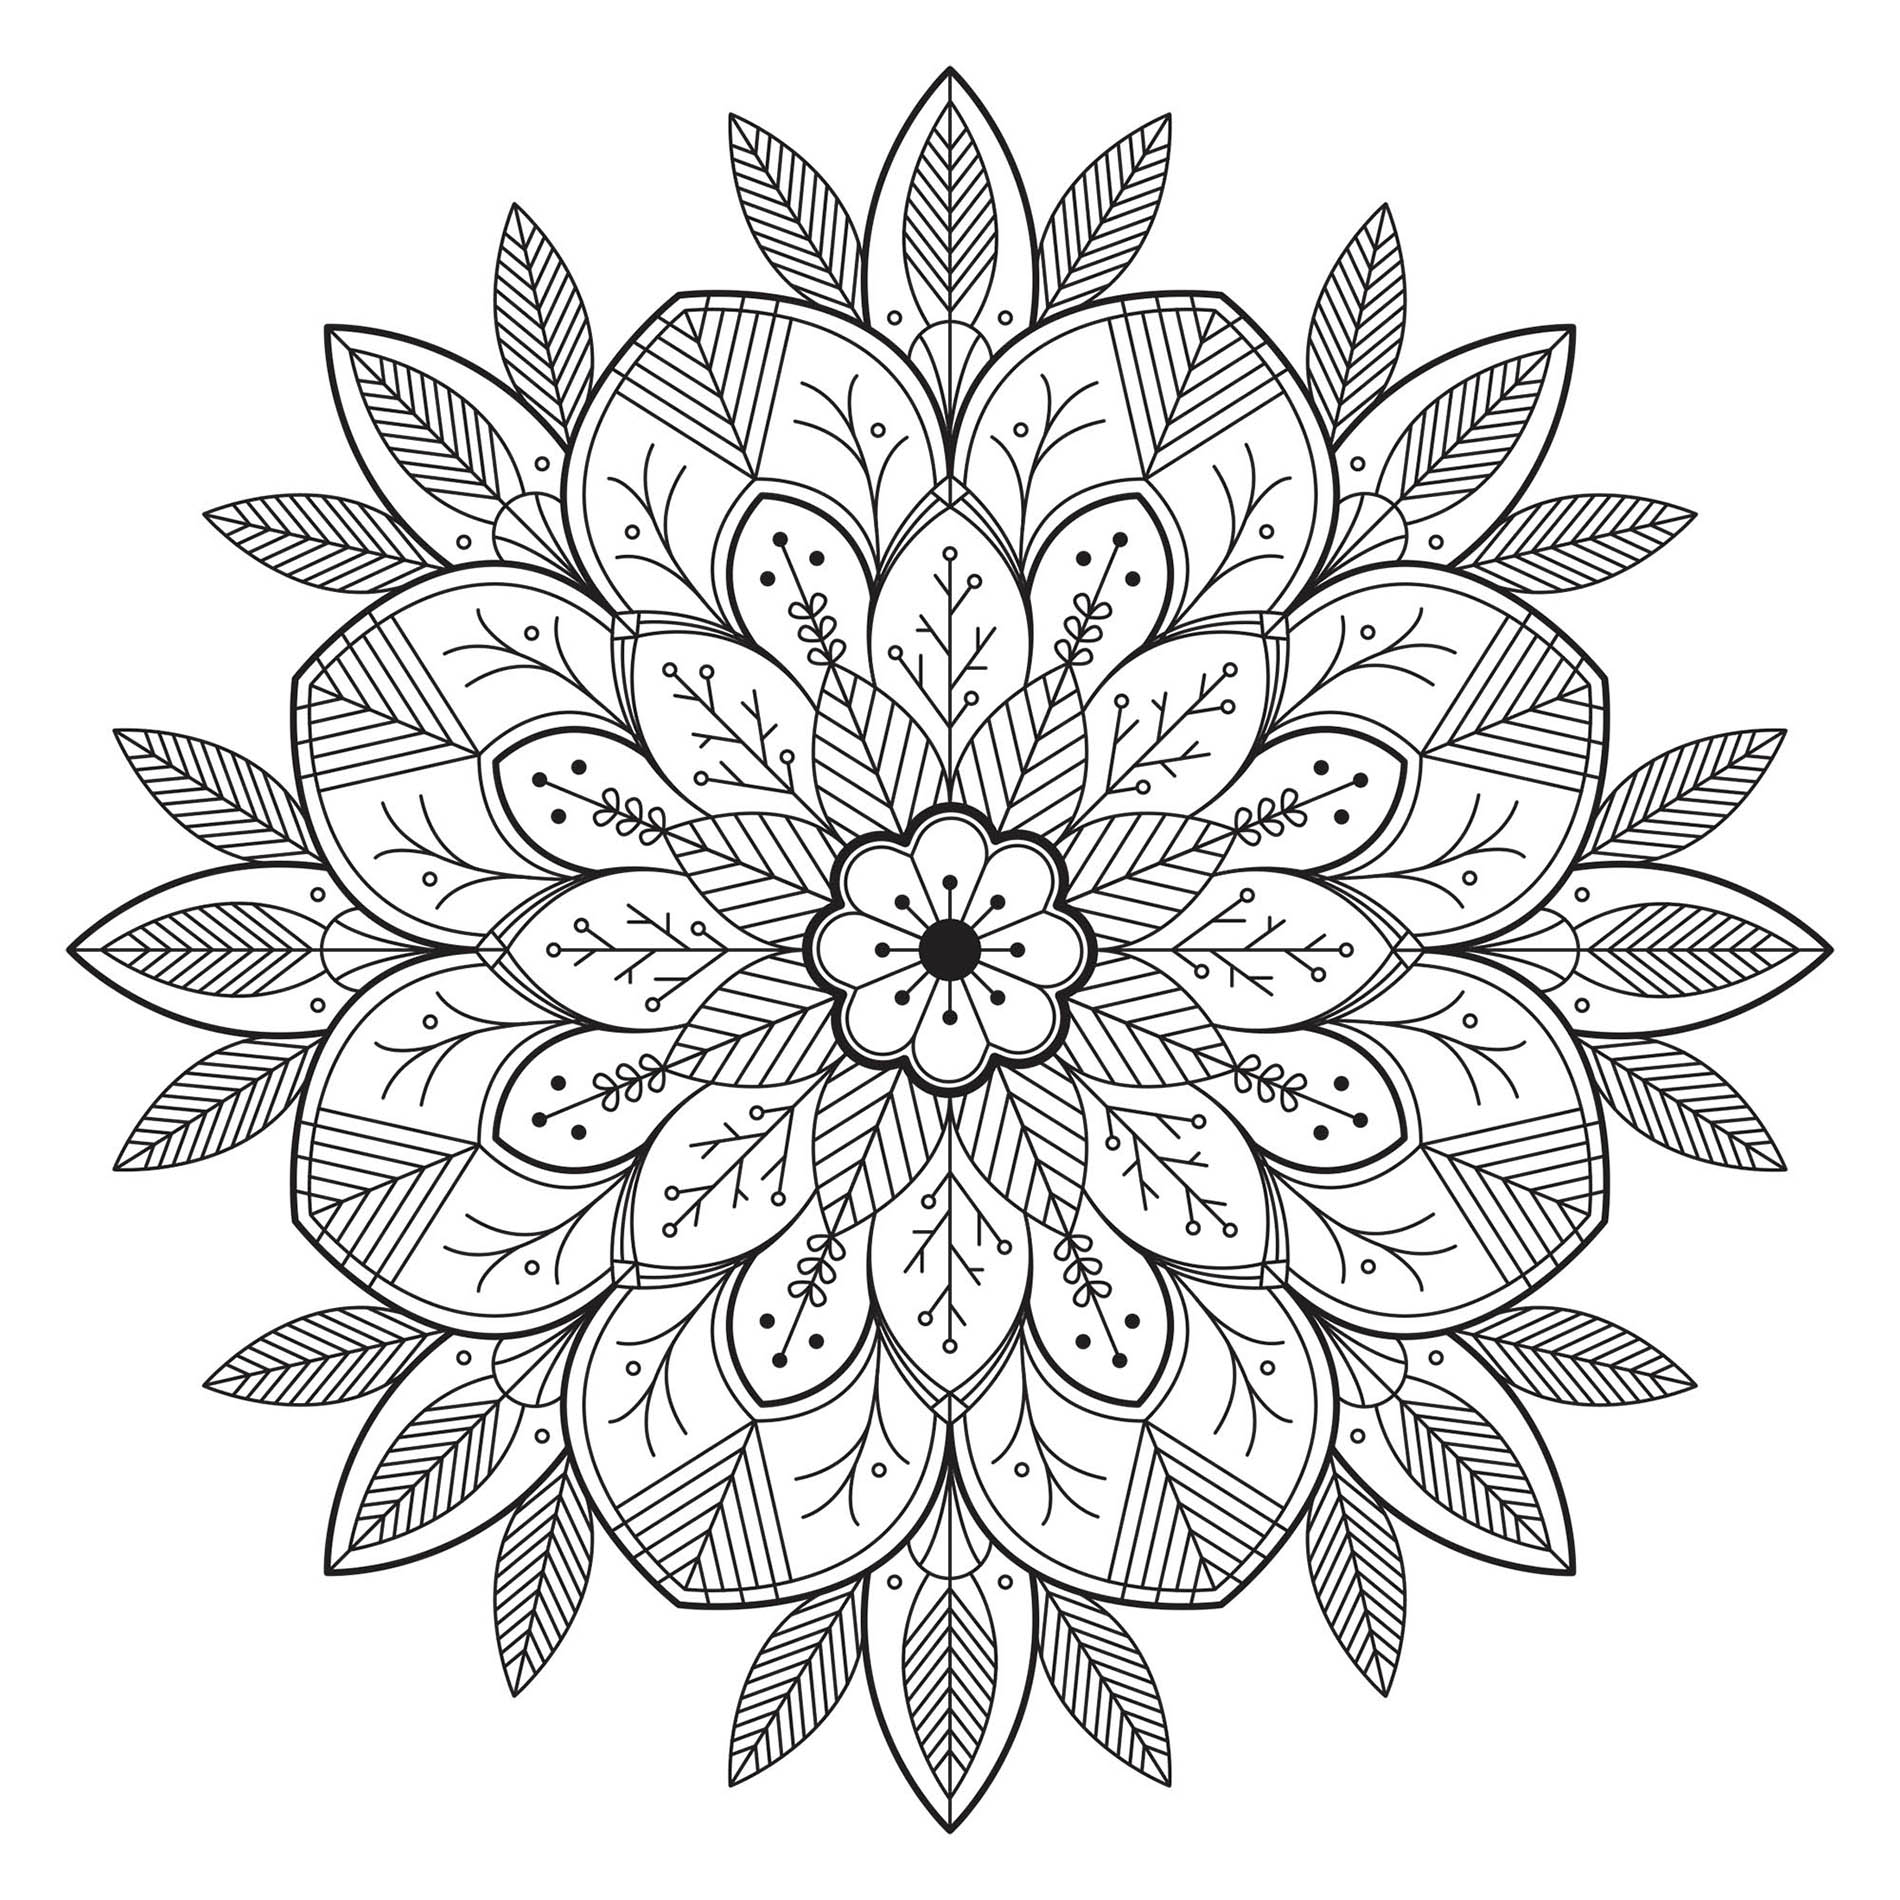 Leaves & Flowers to color in a beautiful Mandala. The vegetal elements often marry very well with this type of drawings, discover it with this incredible Mandala. We advise you clear your mind and allow yourself to forget all your worries to enjoy this moment of creativity.